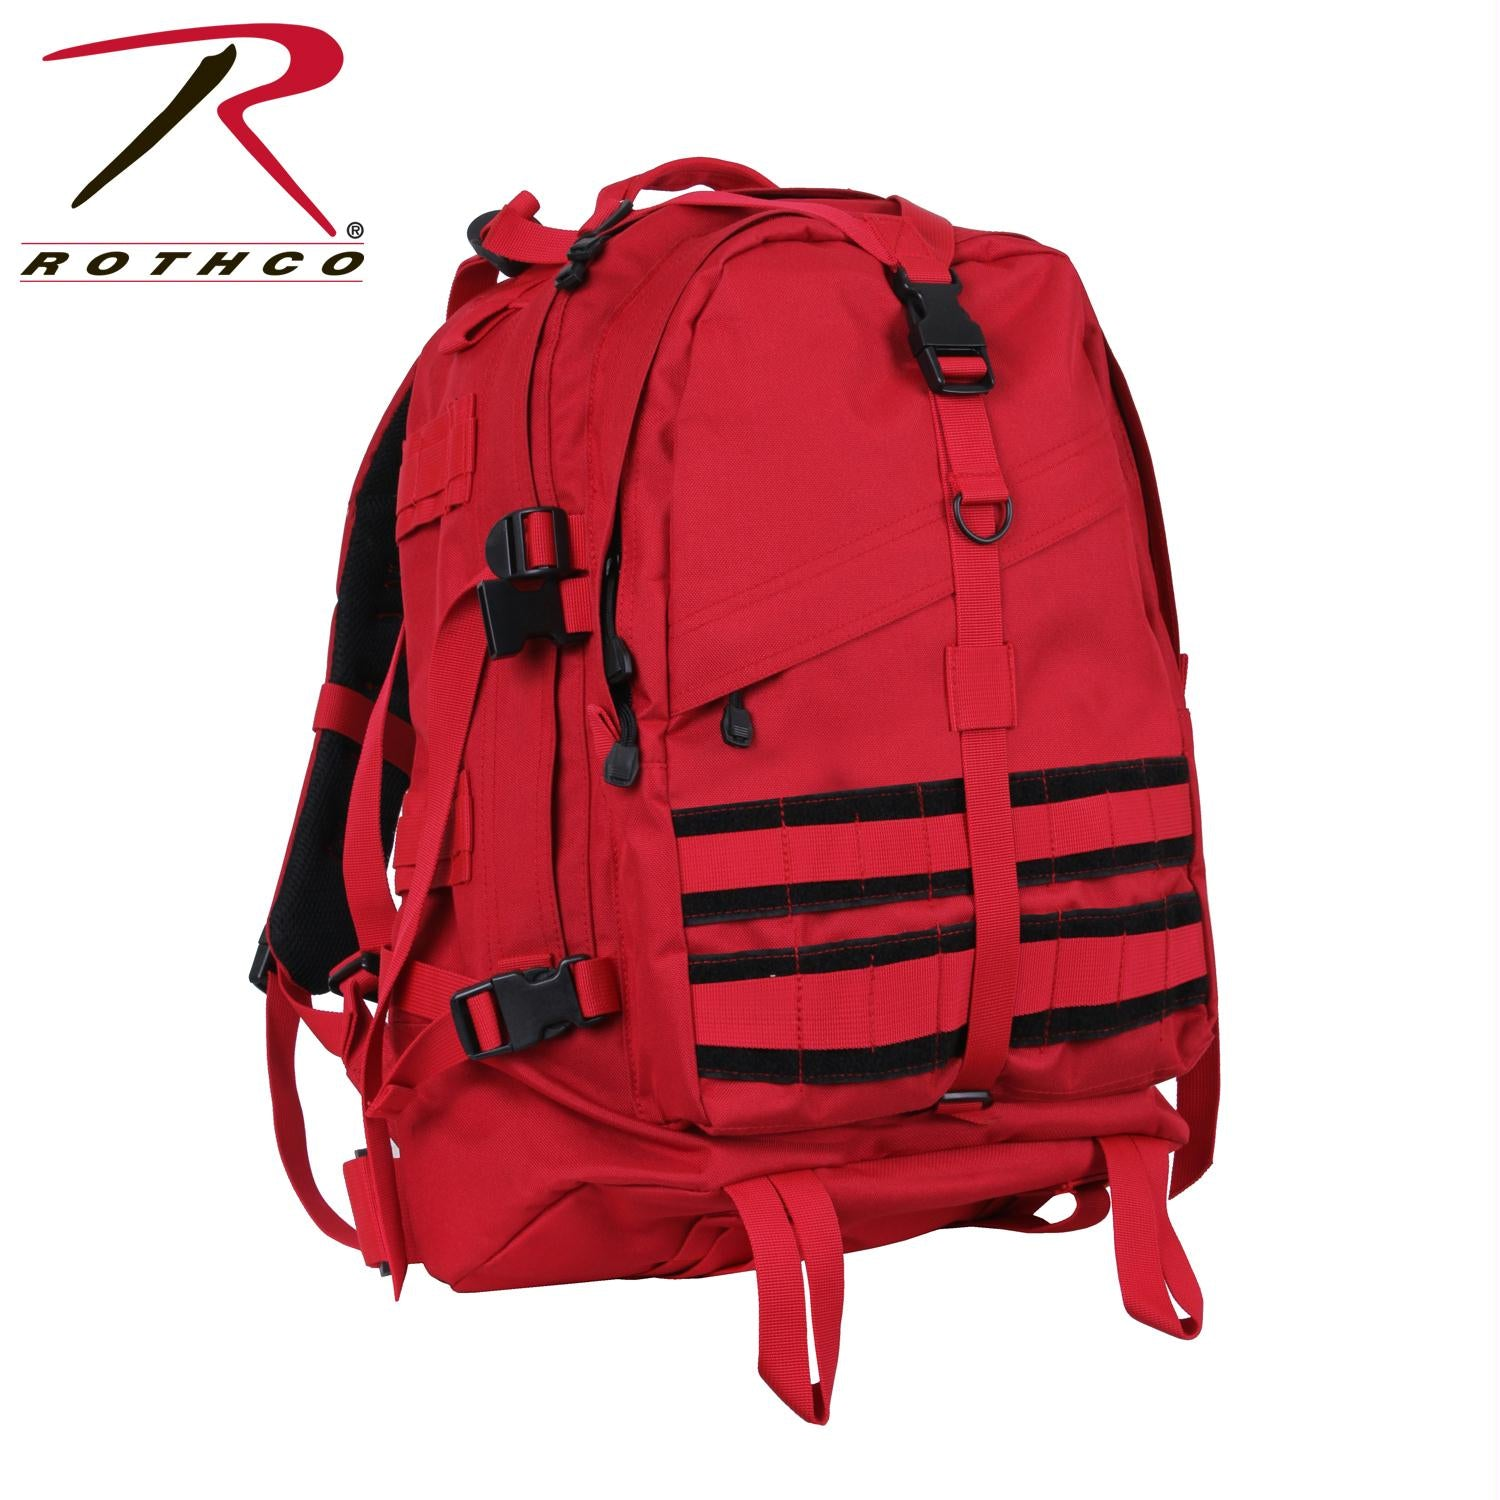 Rothco Large Transport Pack - Red